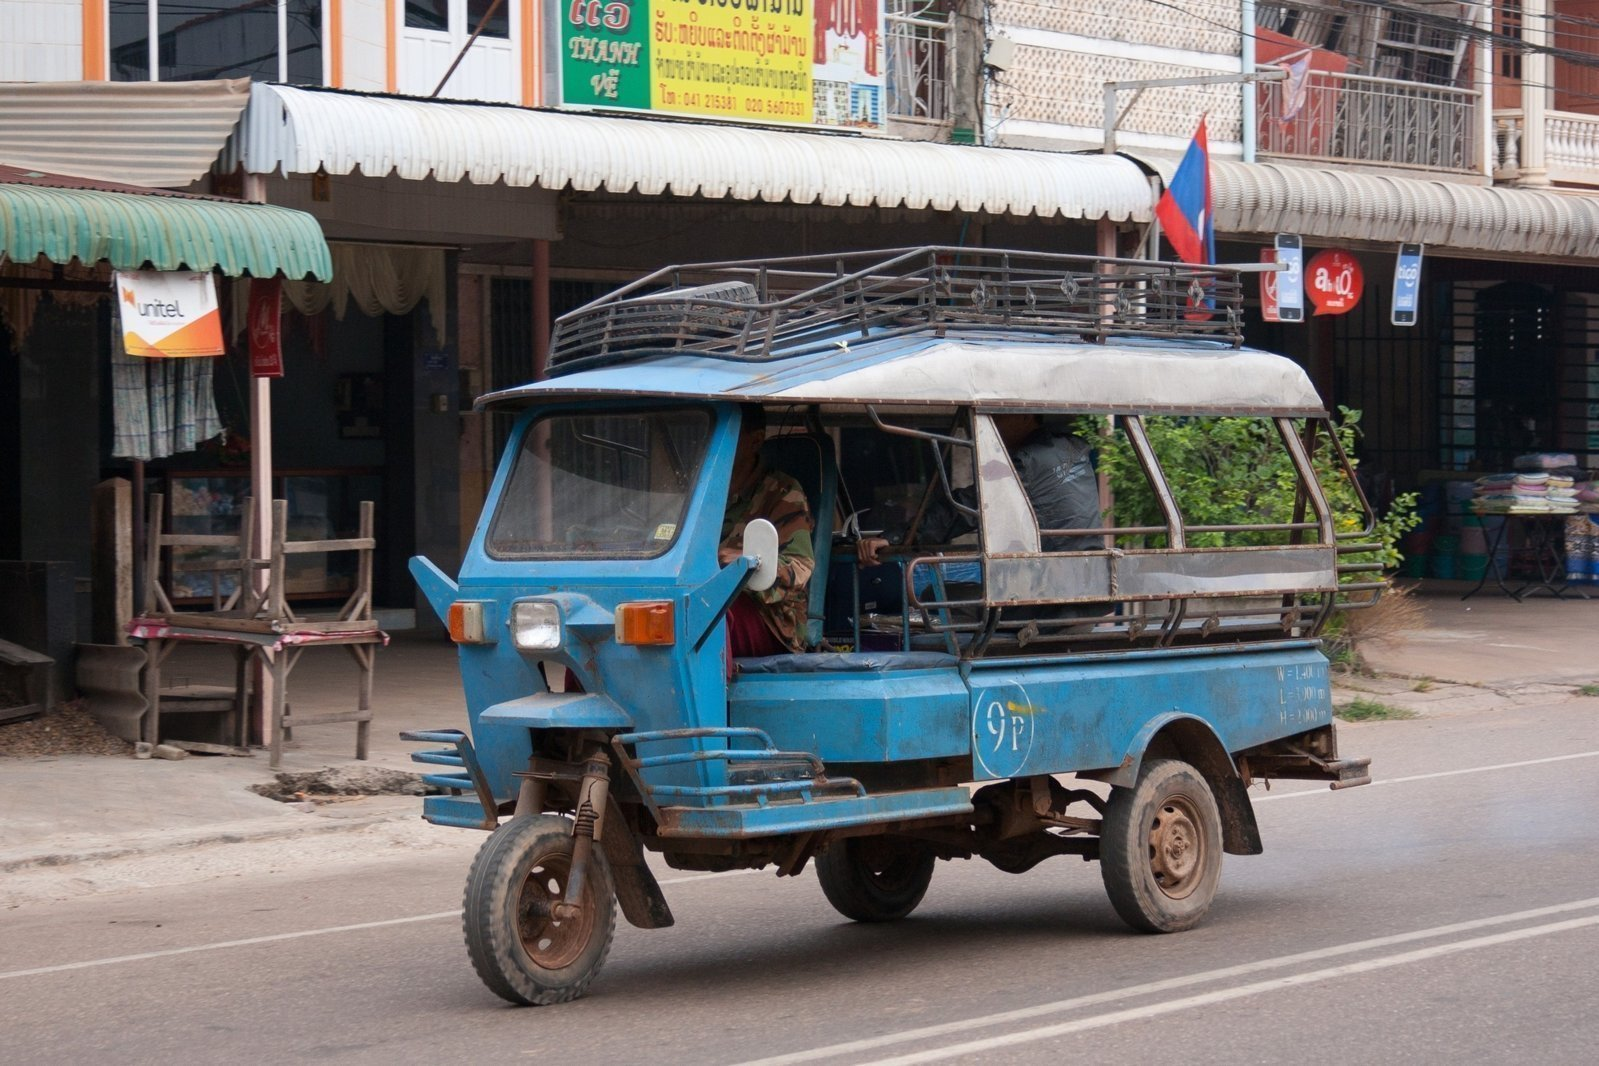 Tuk-tuk_in_Savannakhet_01.jpg